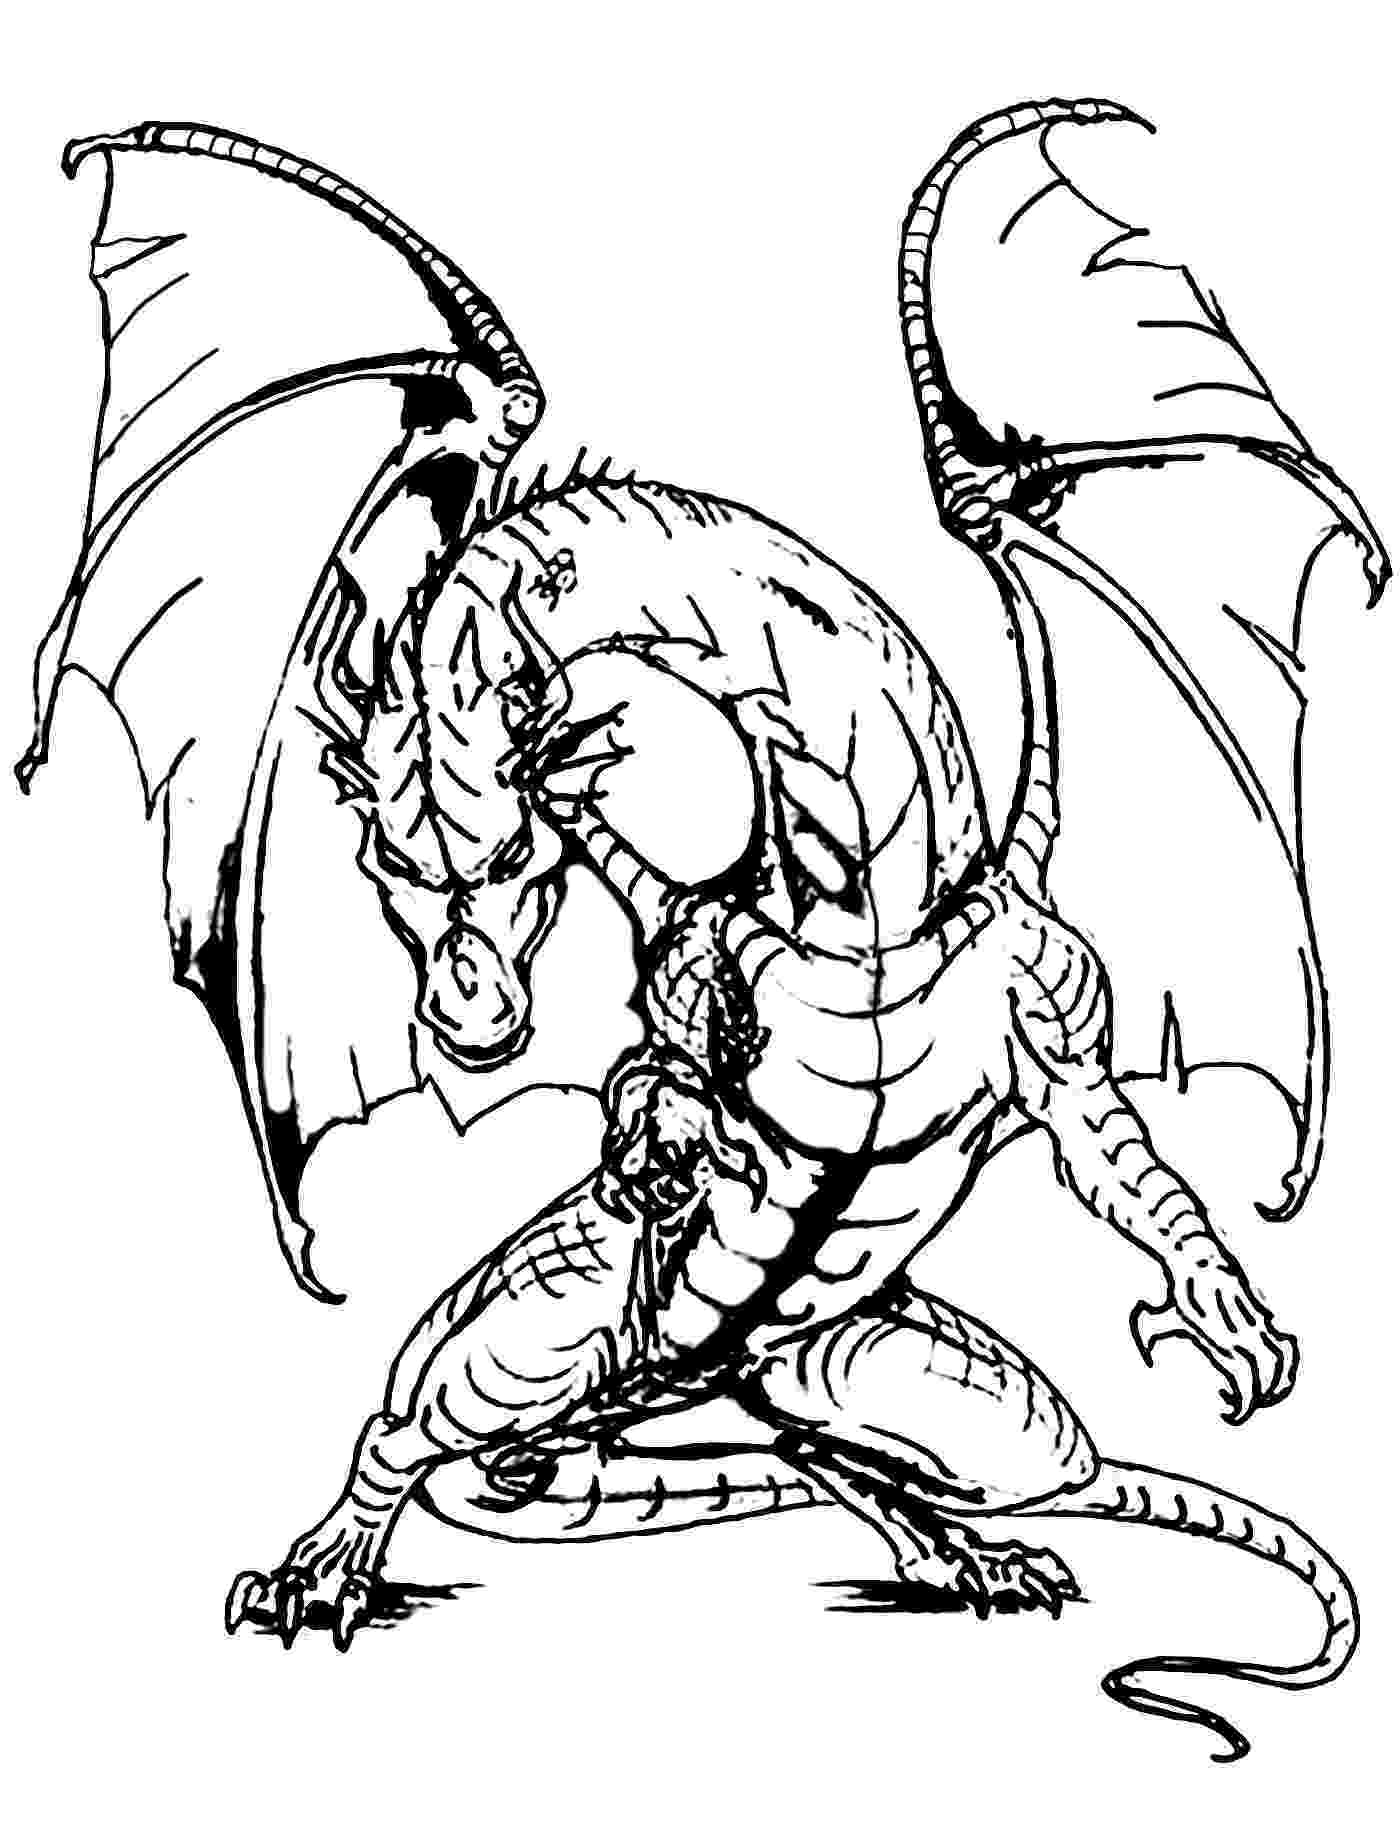 dragons coloring pages dragon coloring pages 360coloringpages pages coloring dragons